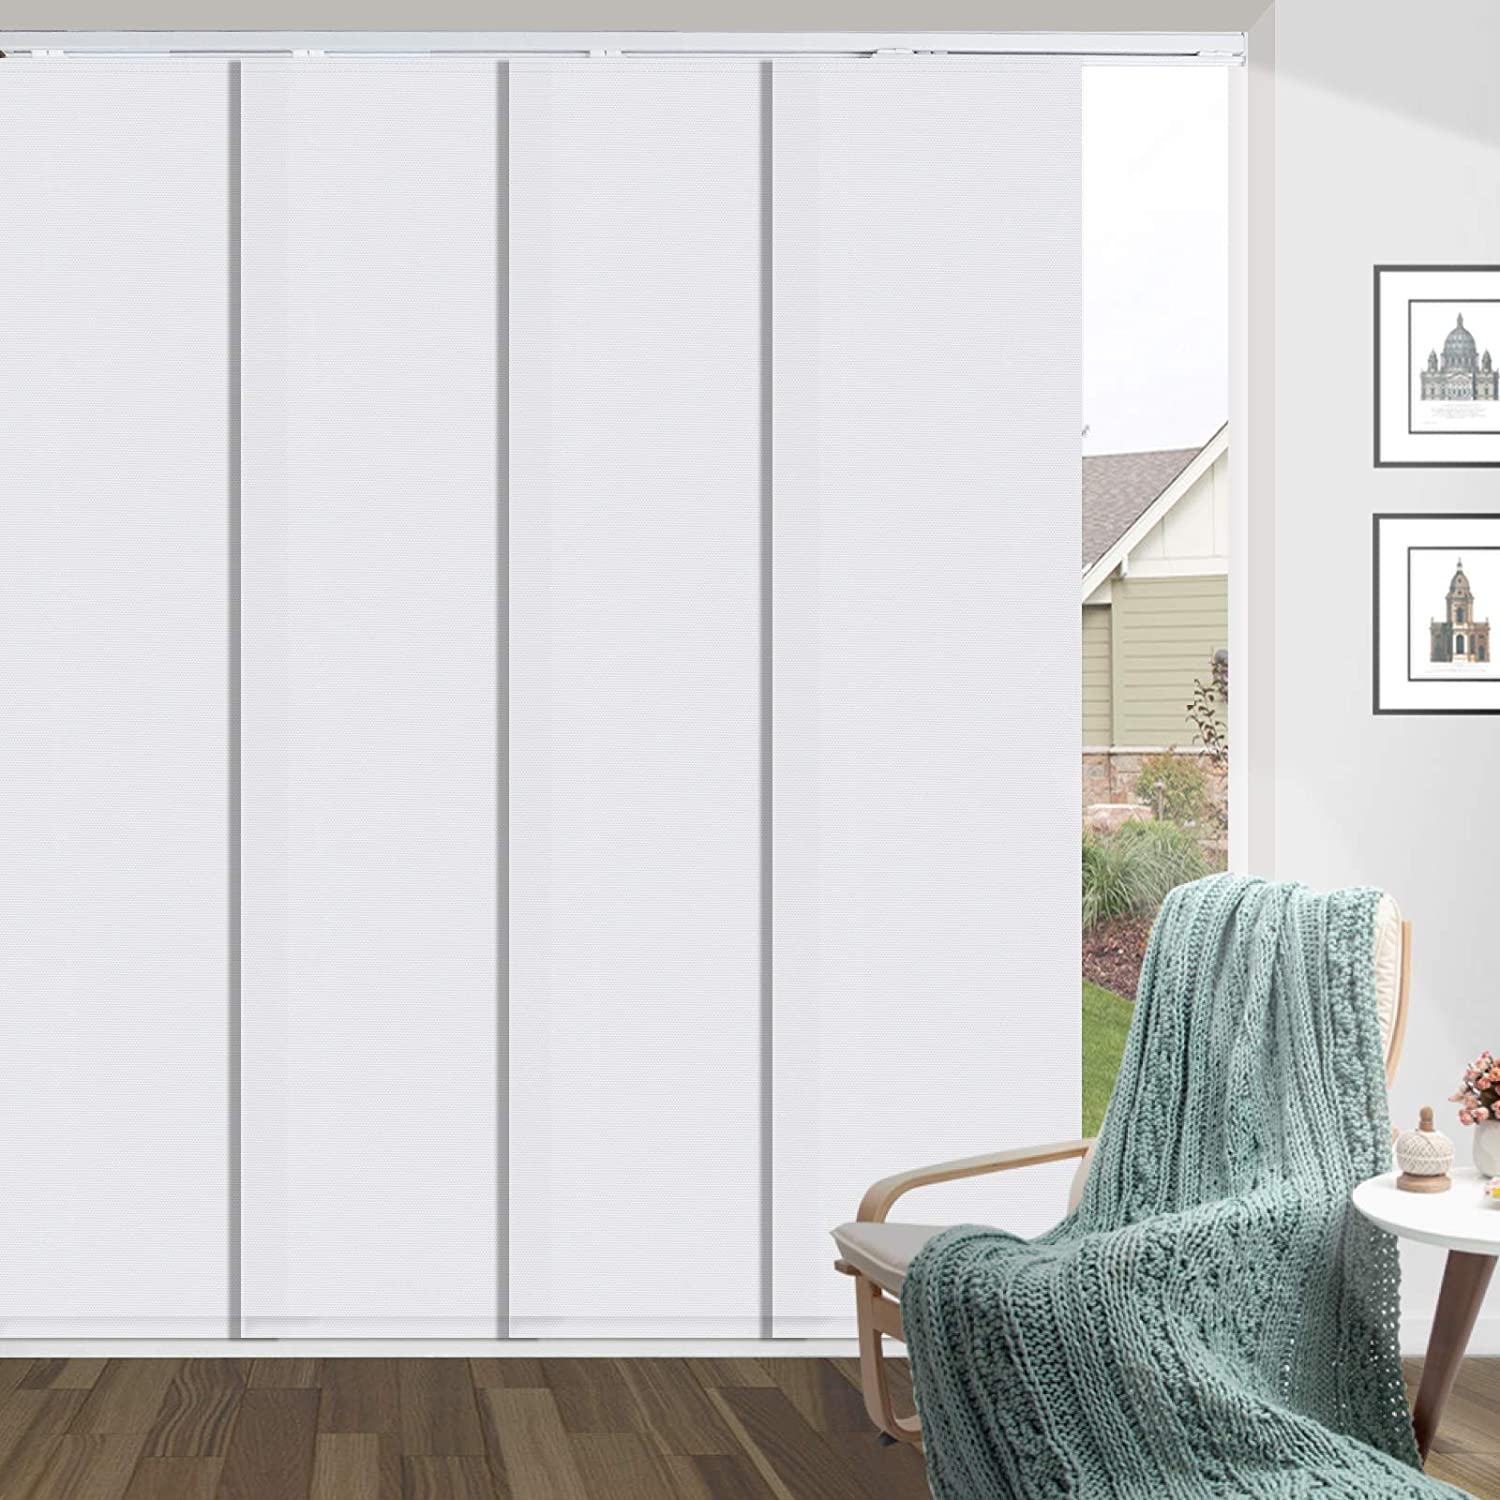 HousCa Max 60% OFF Blackout Sliding Panel Track White Blind Popular brand in the world Cust Adjustable